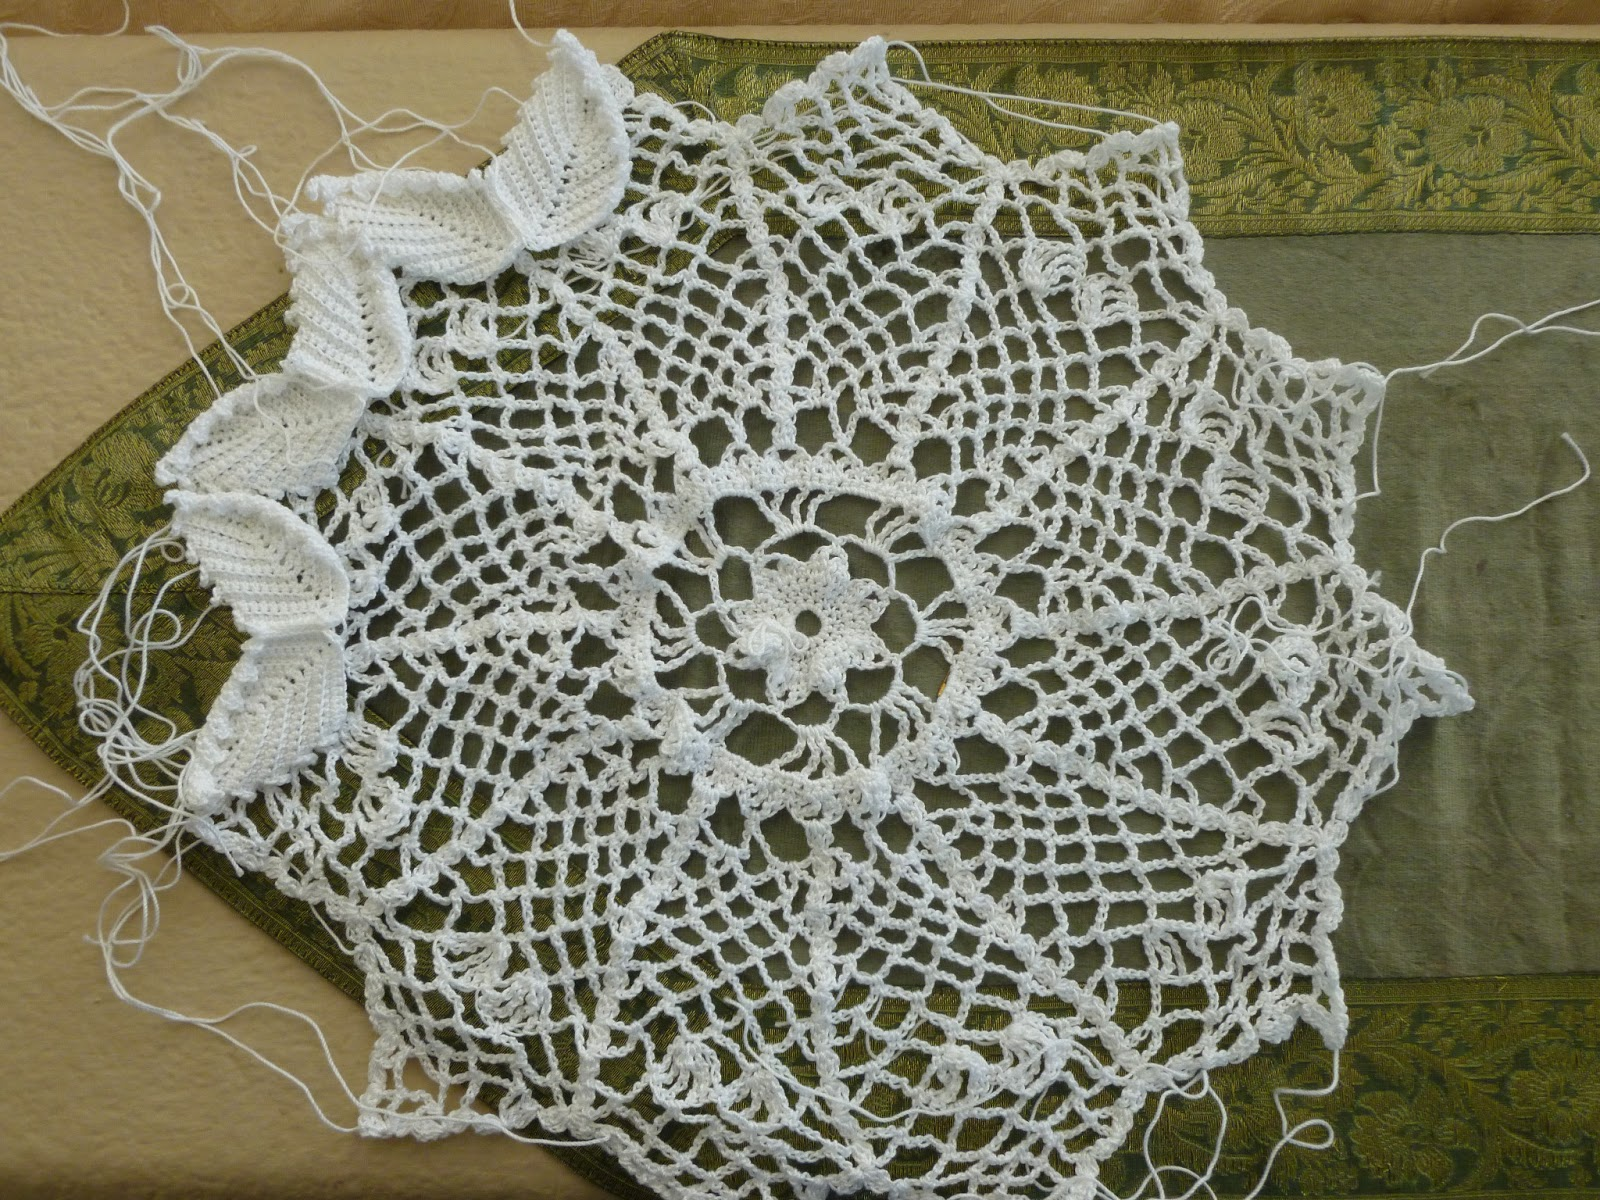 Lilly My Cat: Vintage Crochet Doily Pattern and Baby Booties